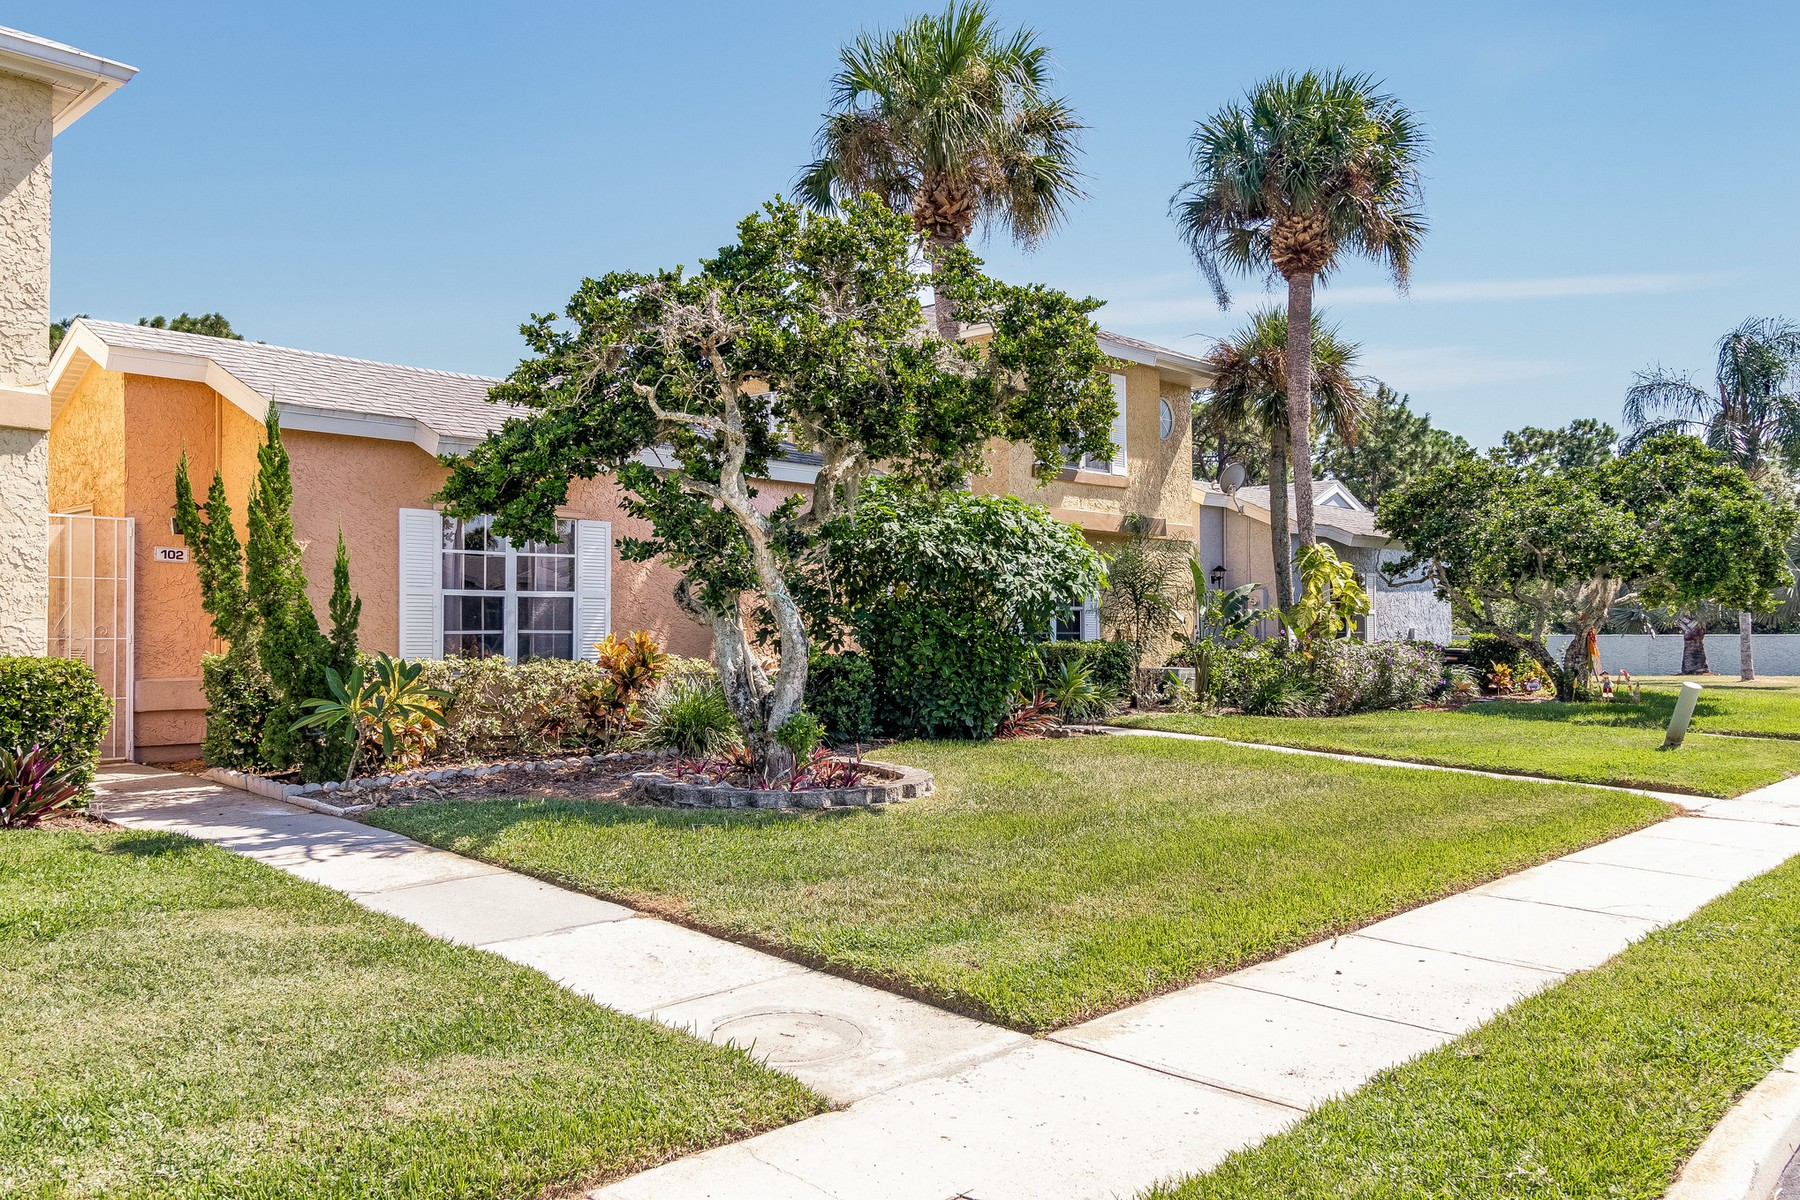 townhouses for Sale at Charming Courtyard Townhouse with Cozy & Welcoming Feel! 1460 Malibu Circle Unit 102, Palm Bay, Florida 32905 United States